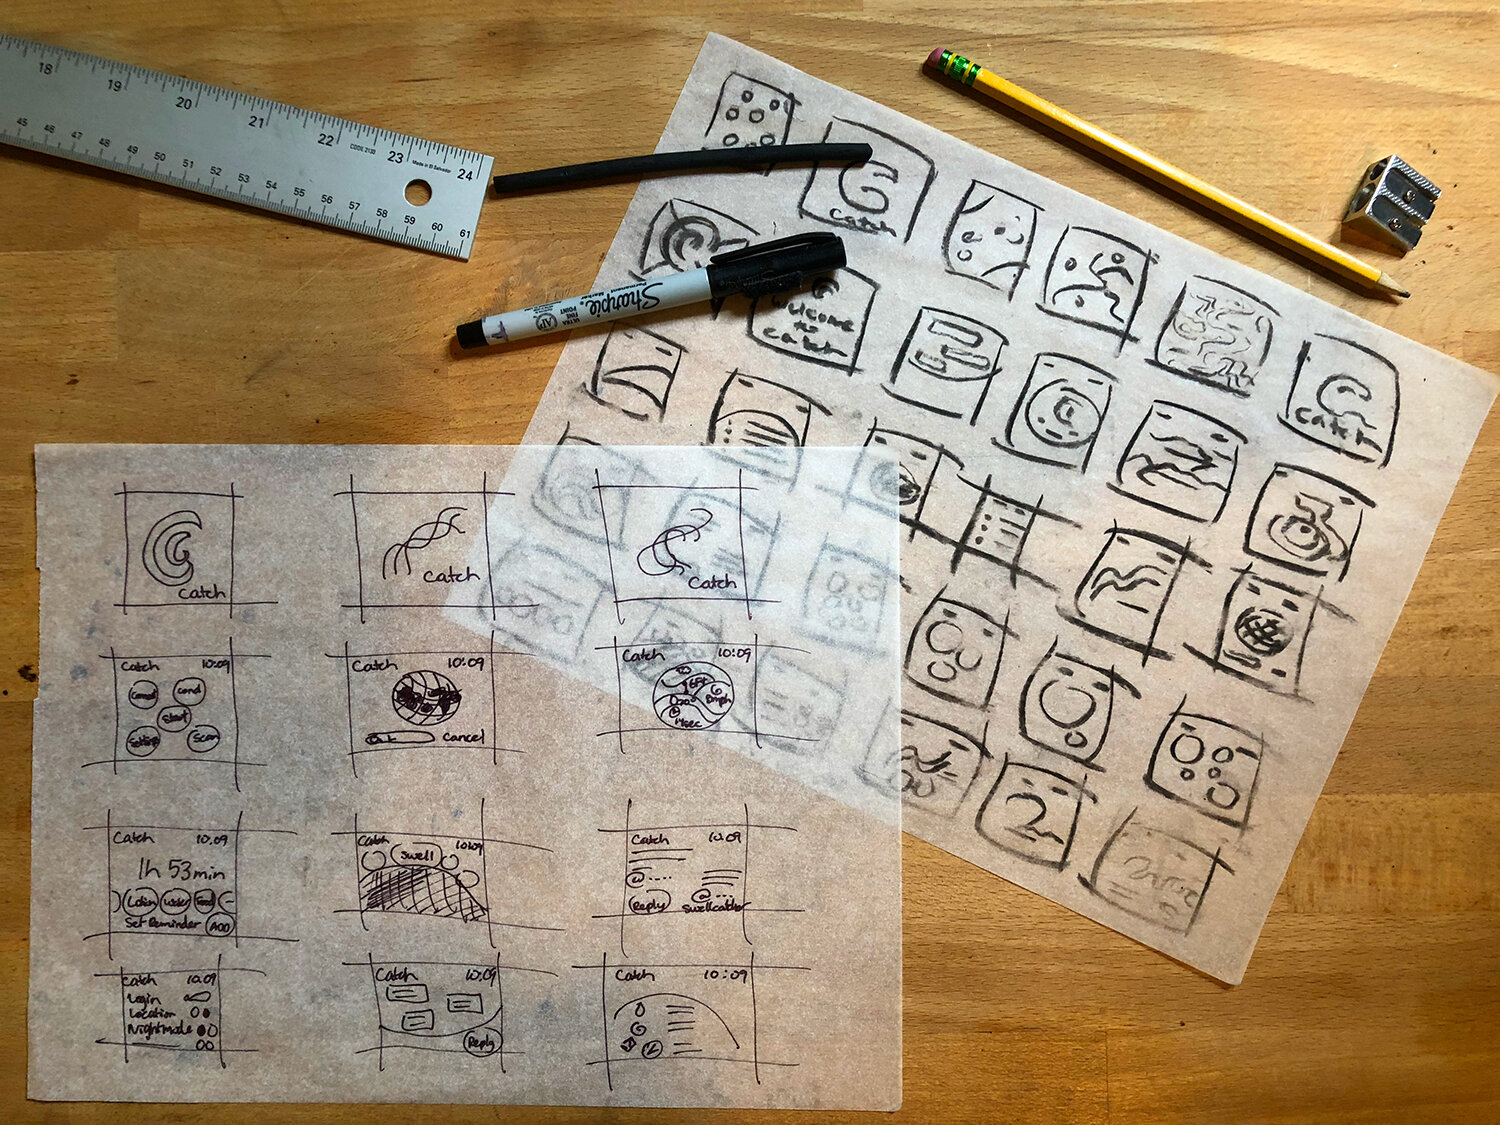 After extensive research on surf applications, sketches were drafted out for initial stage of wireframing. -